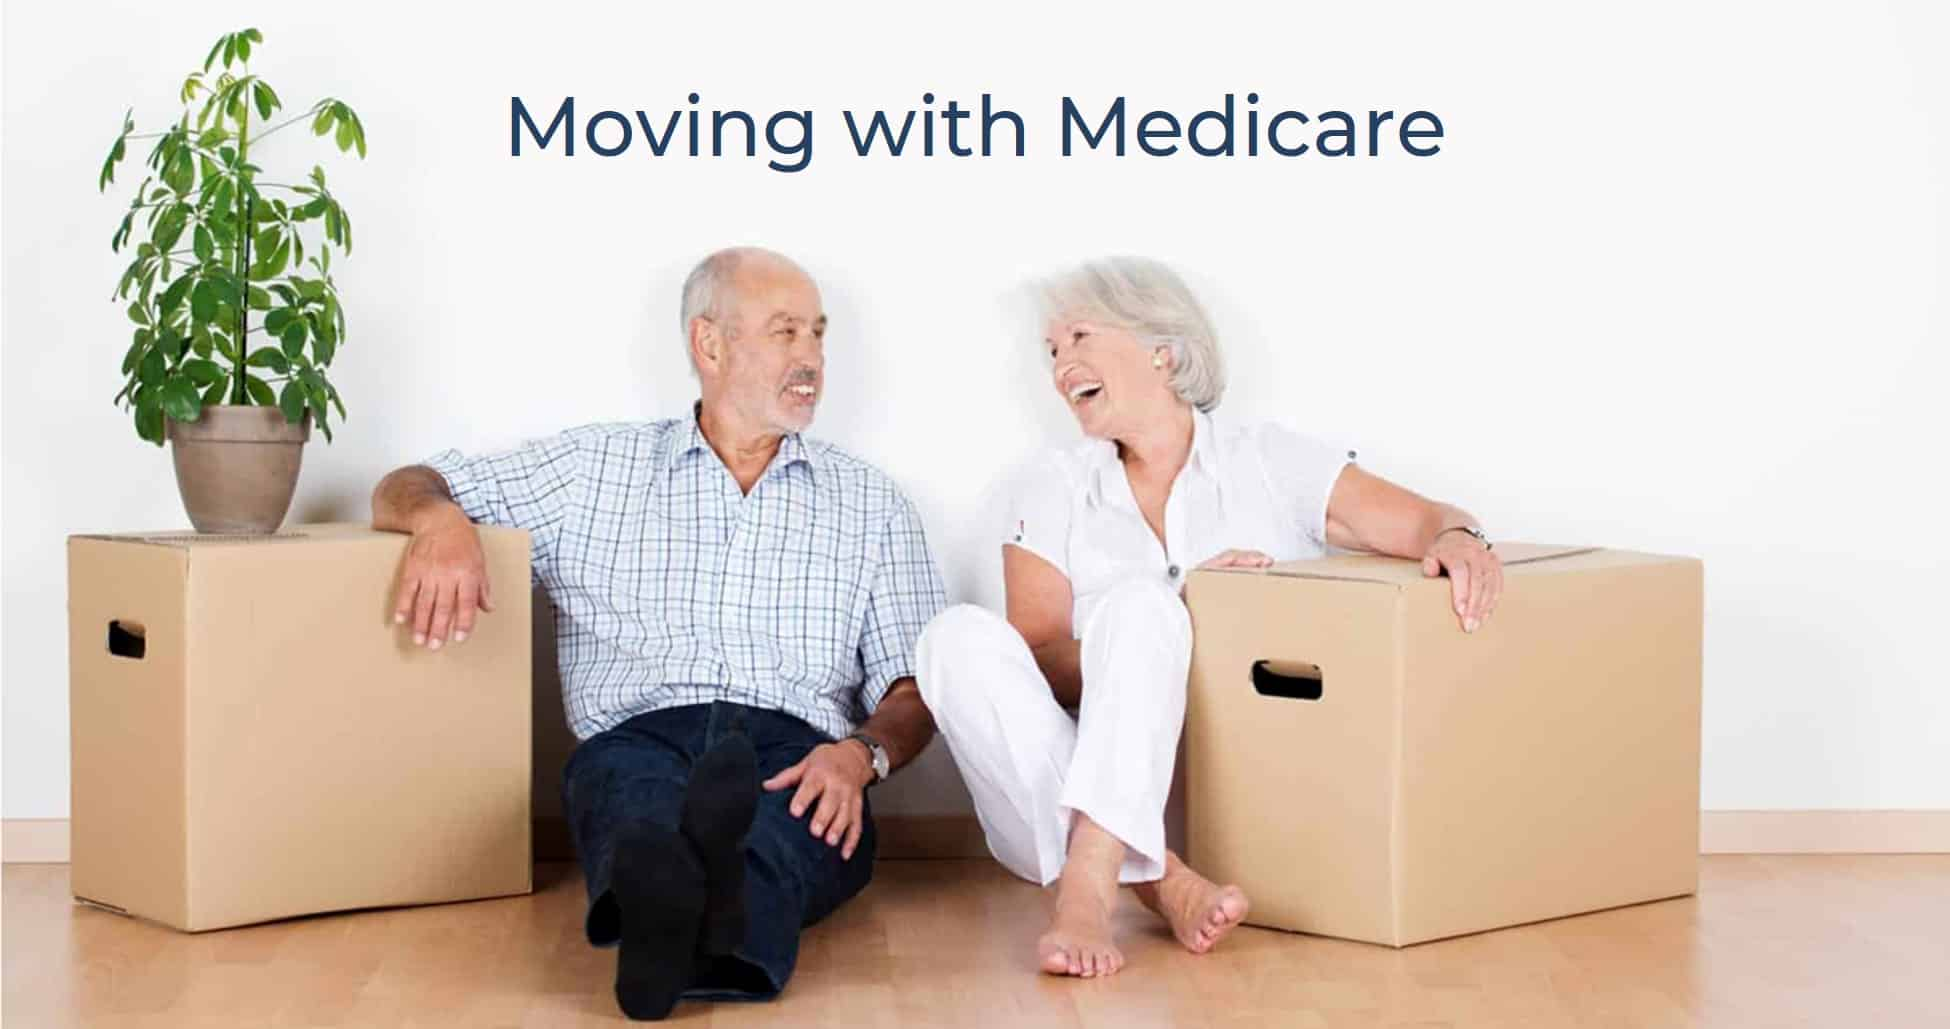 Transferring Medicare from State to State: What Happens?